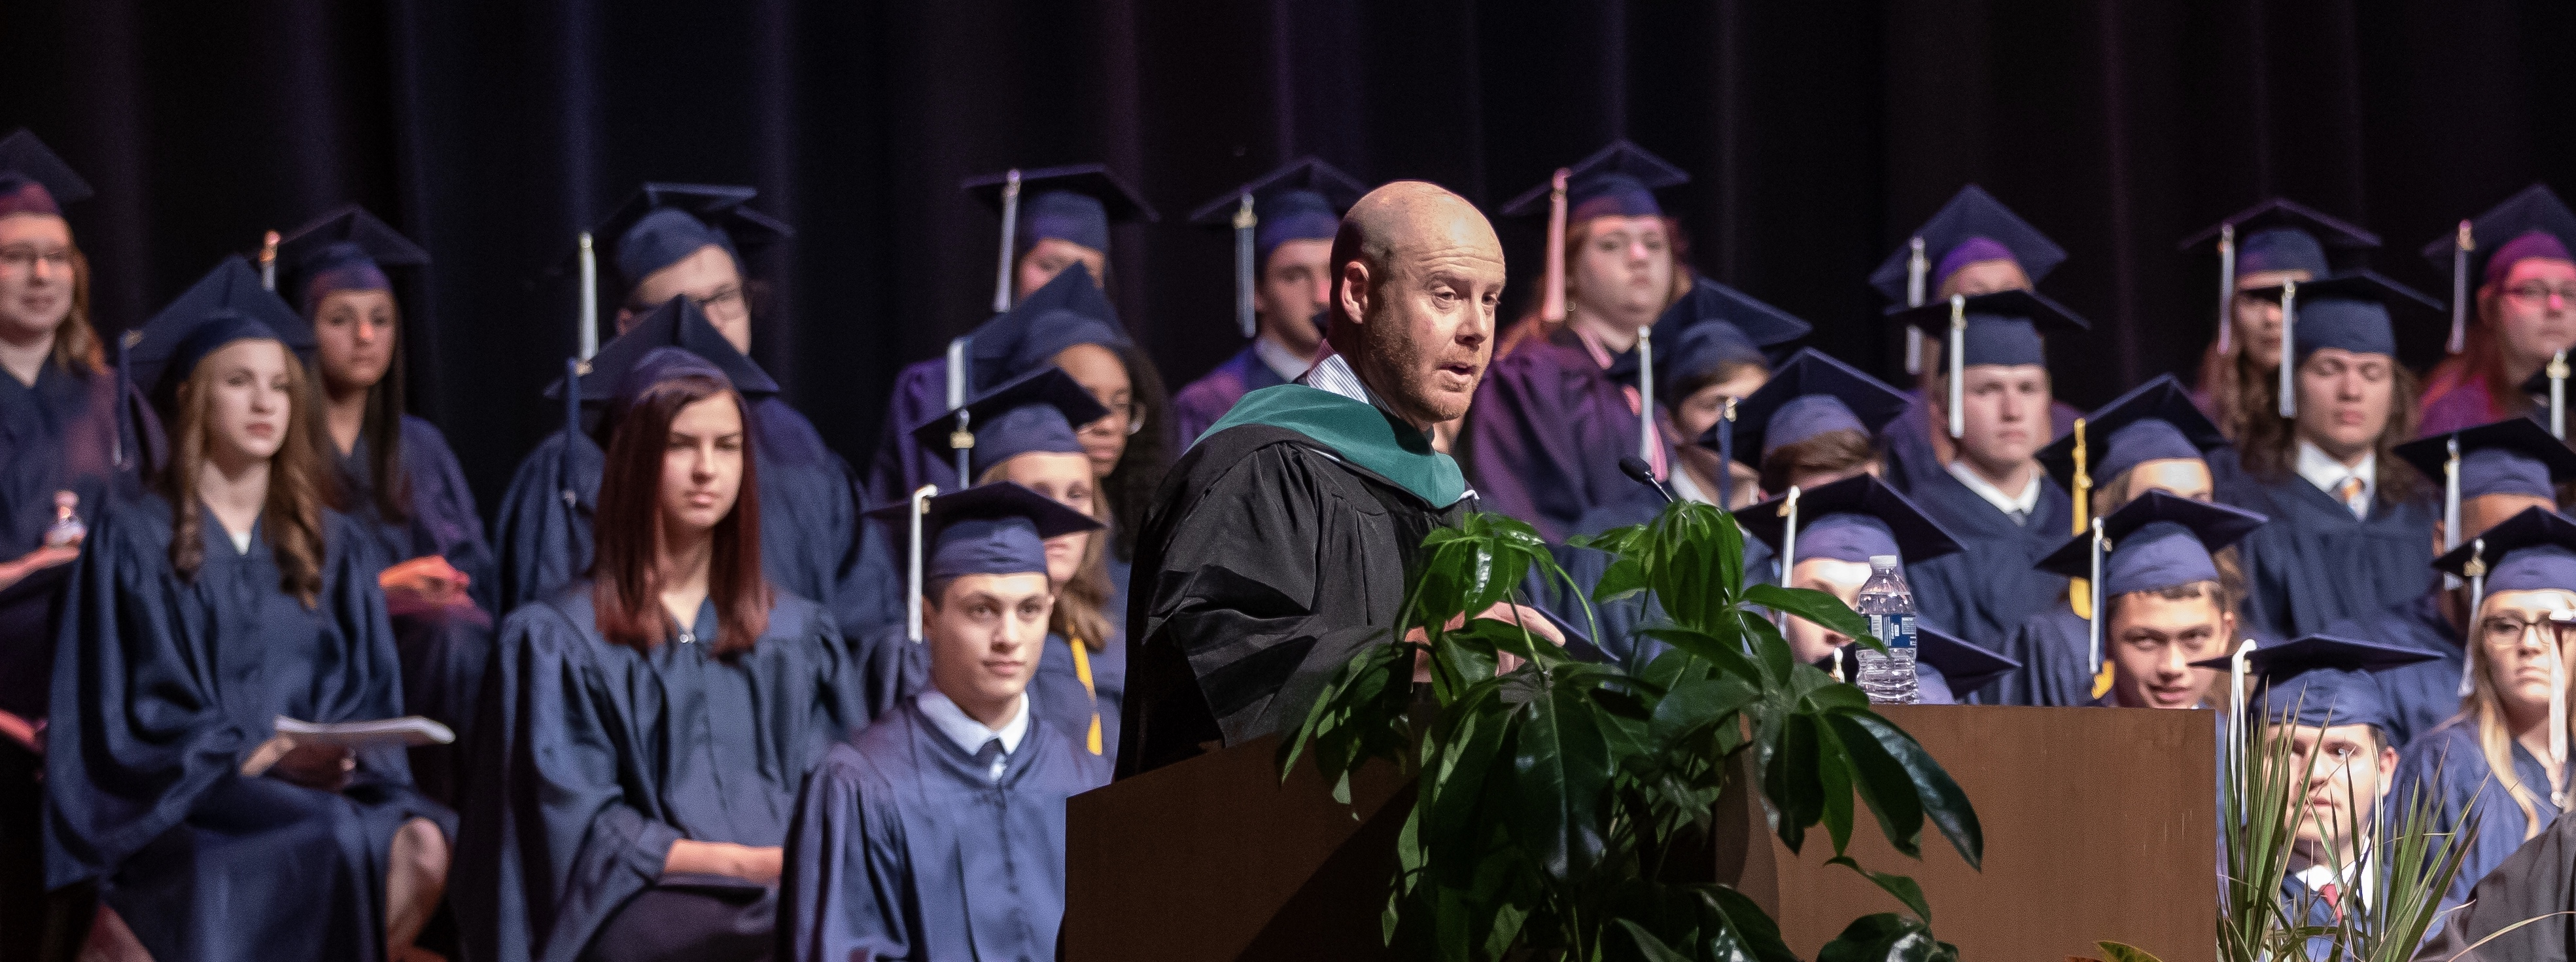 doctor michael karch at the podium at 2019 graduation